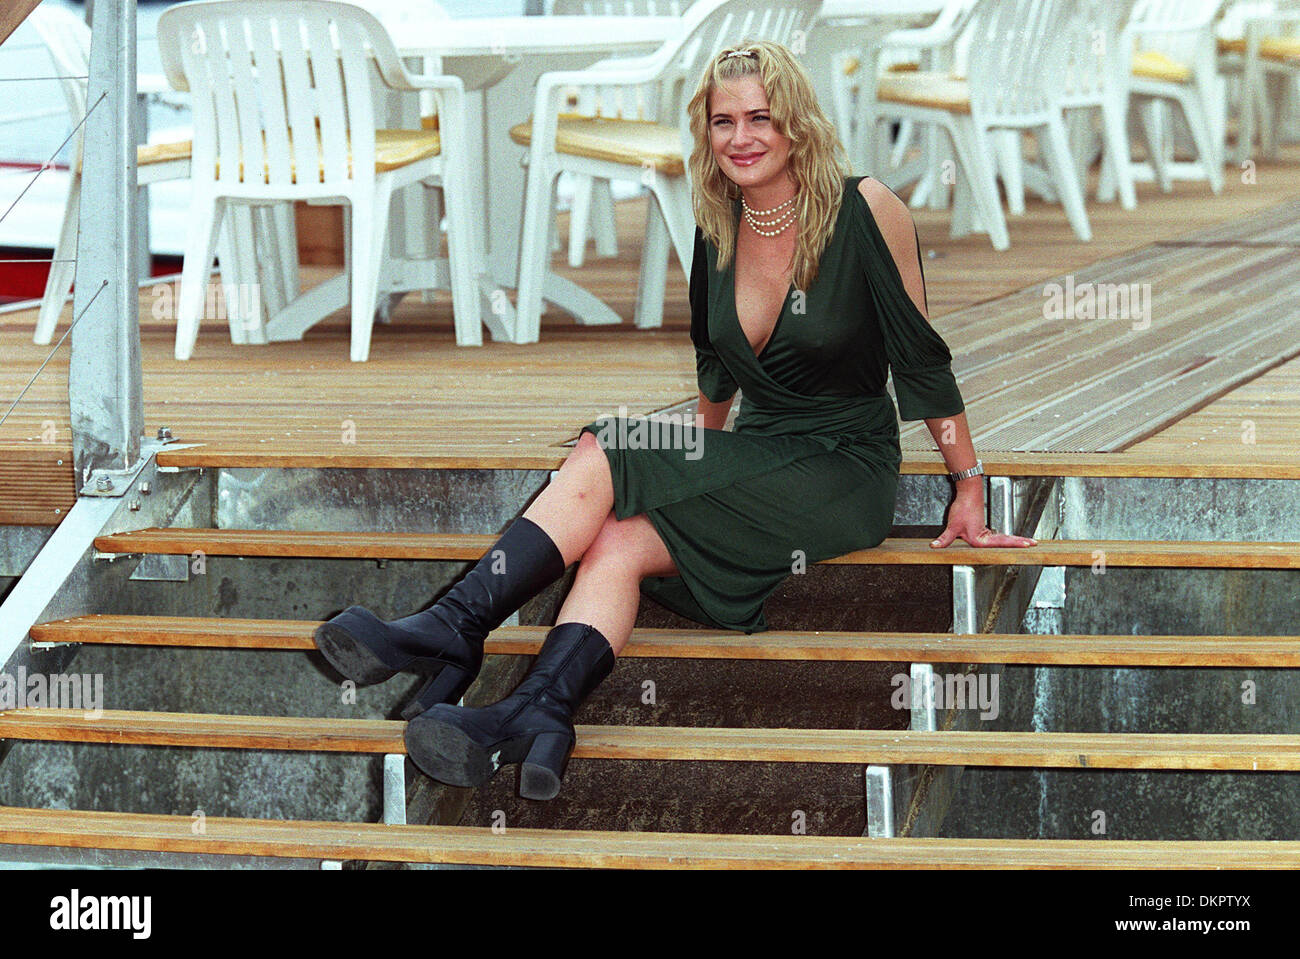 KRISTY SWANSON.ACTRESS.CANNES, FRANCE, EUROPE.10/05/2001.BH47C14C. - Stock Image